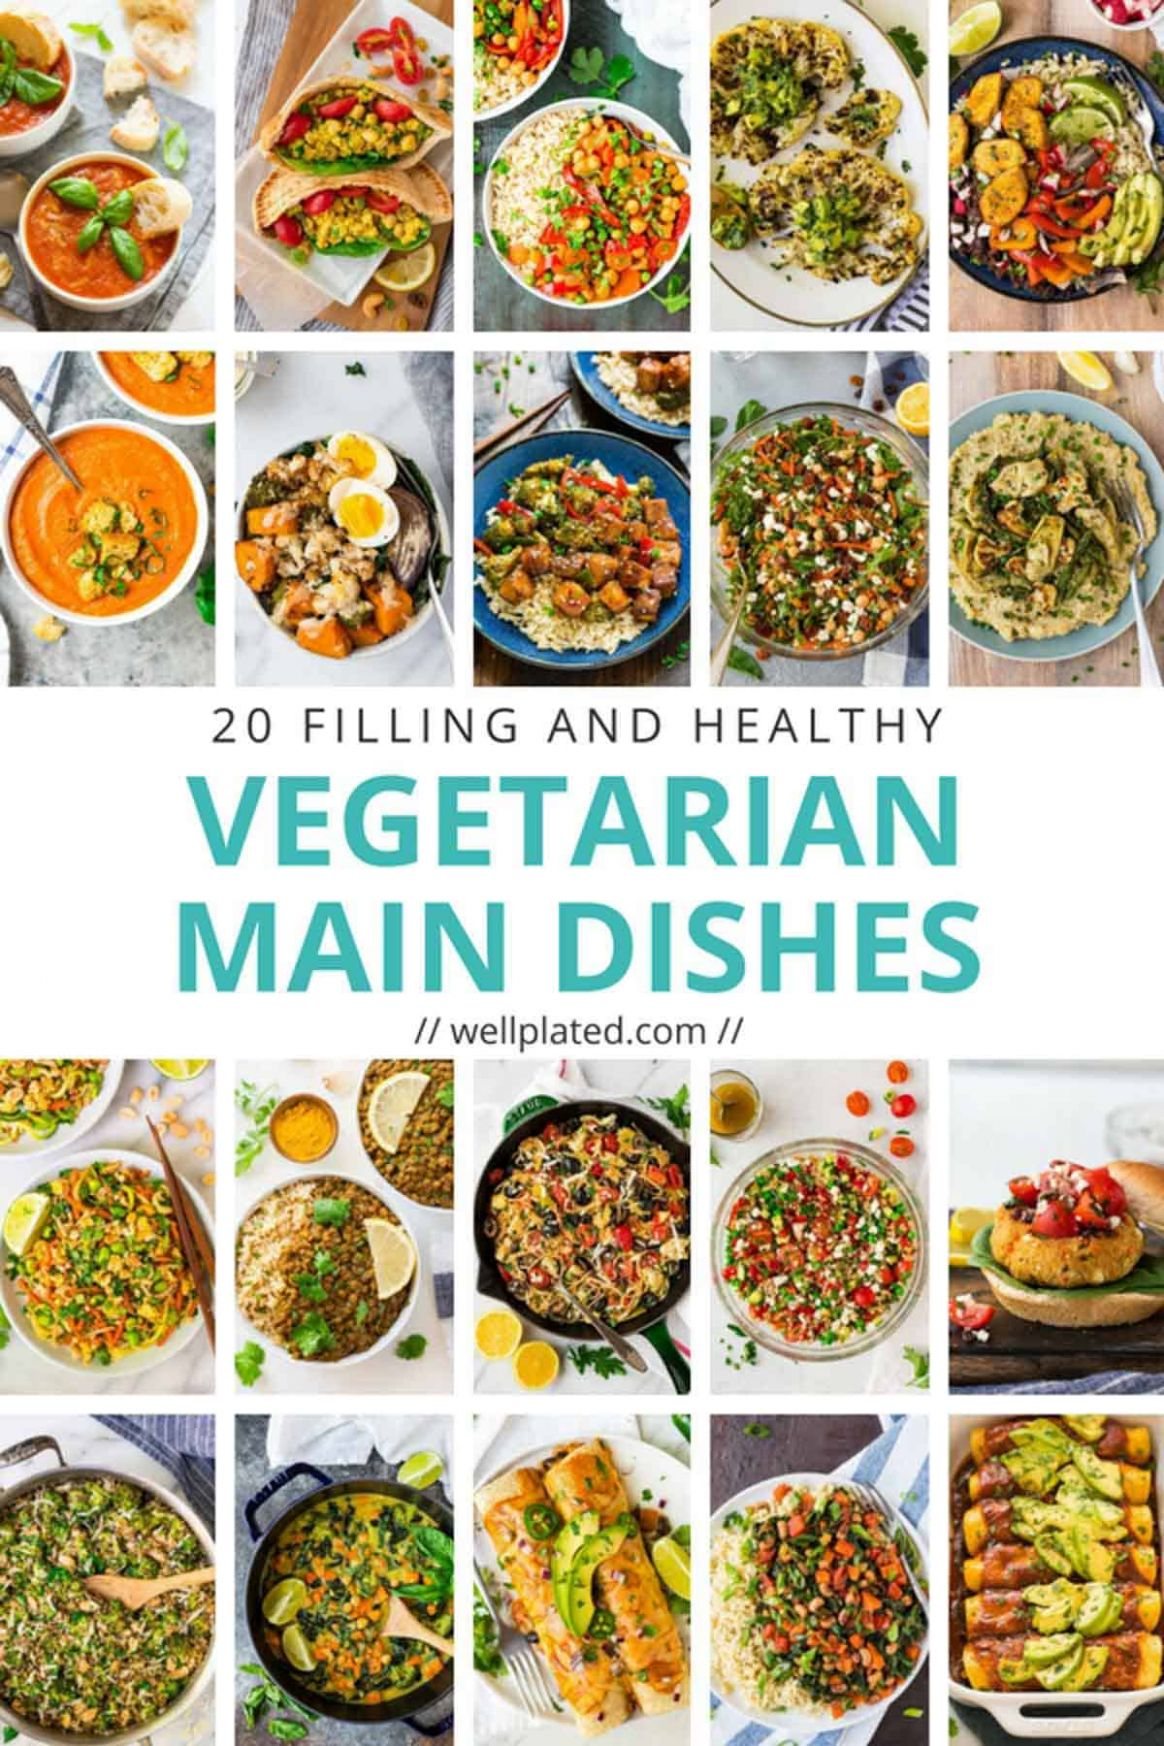 9 Healthy Vegetarian Dinner Recipes